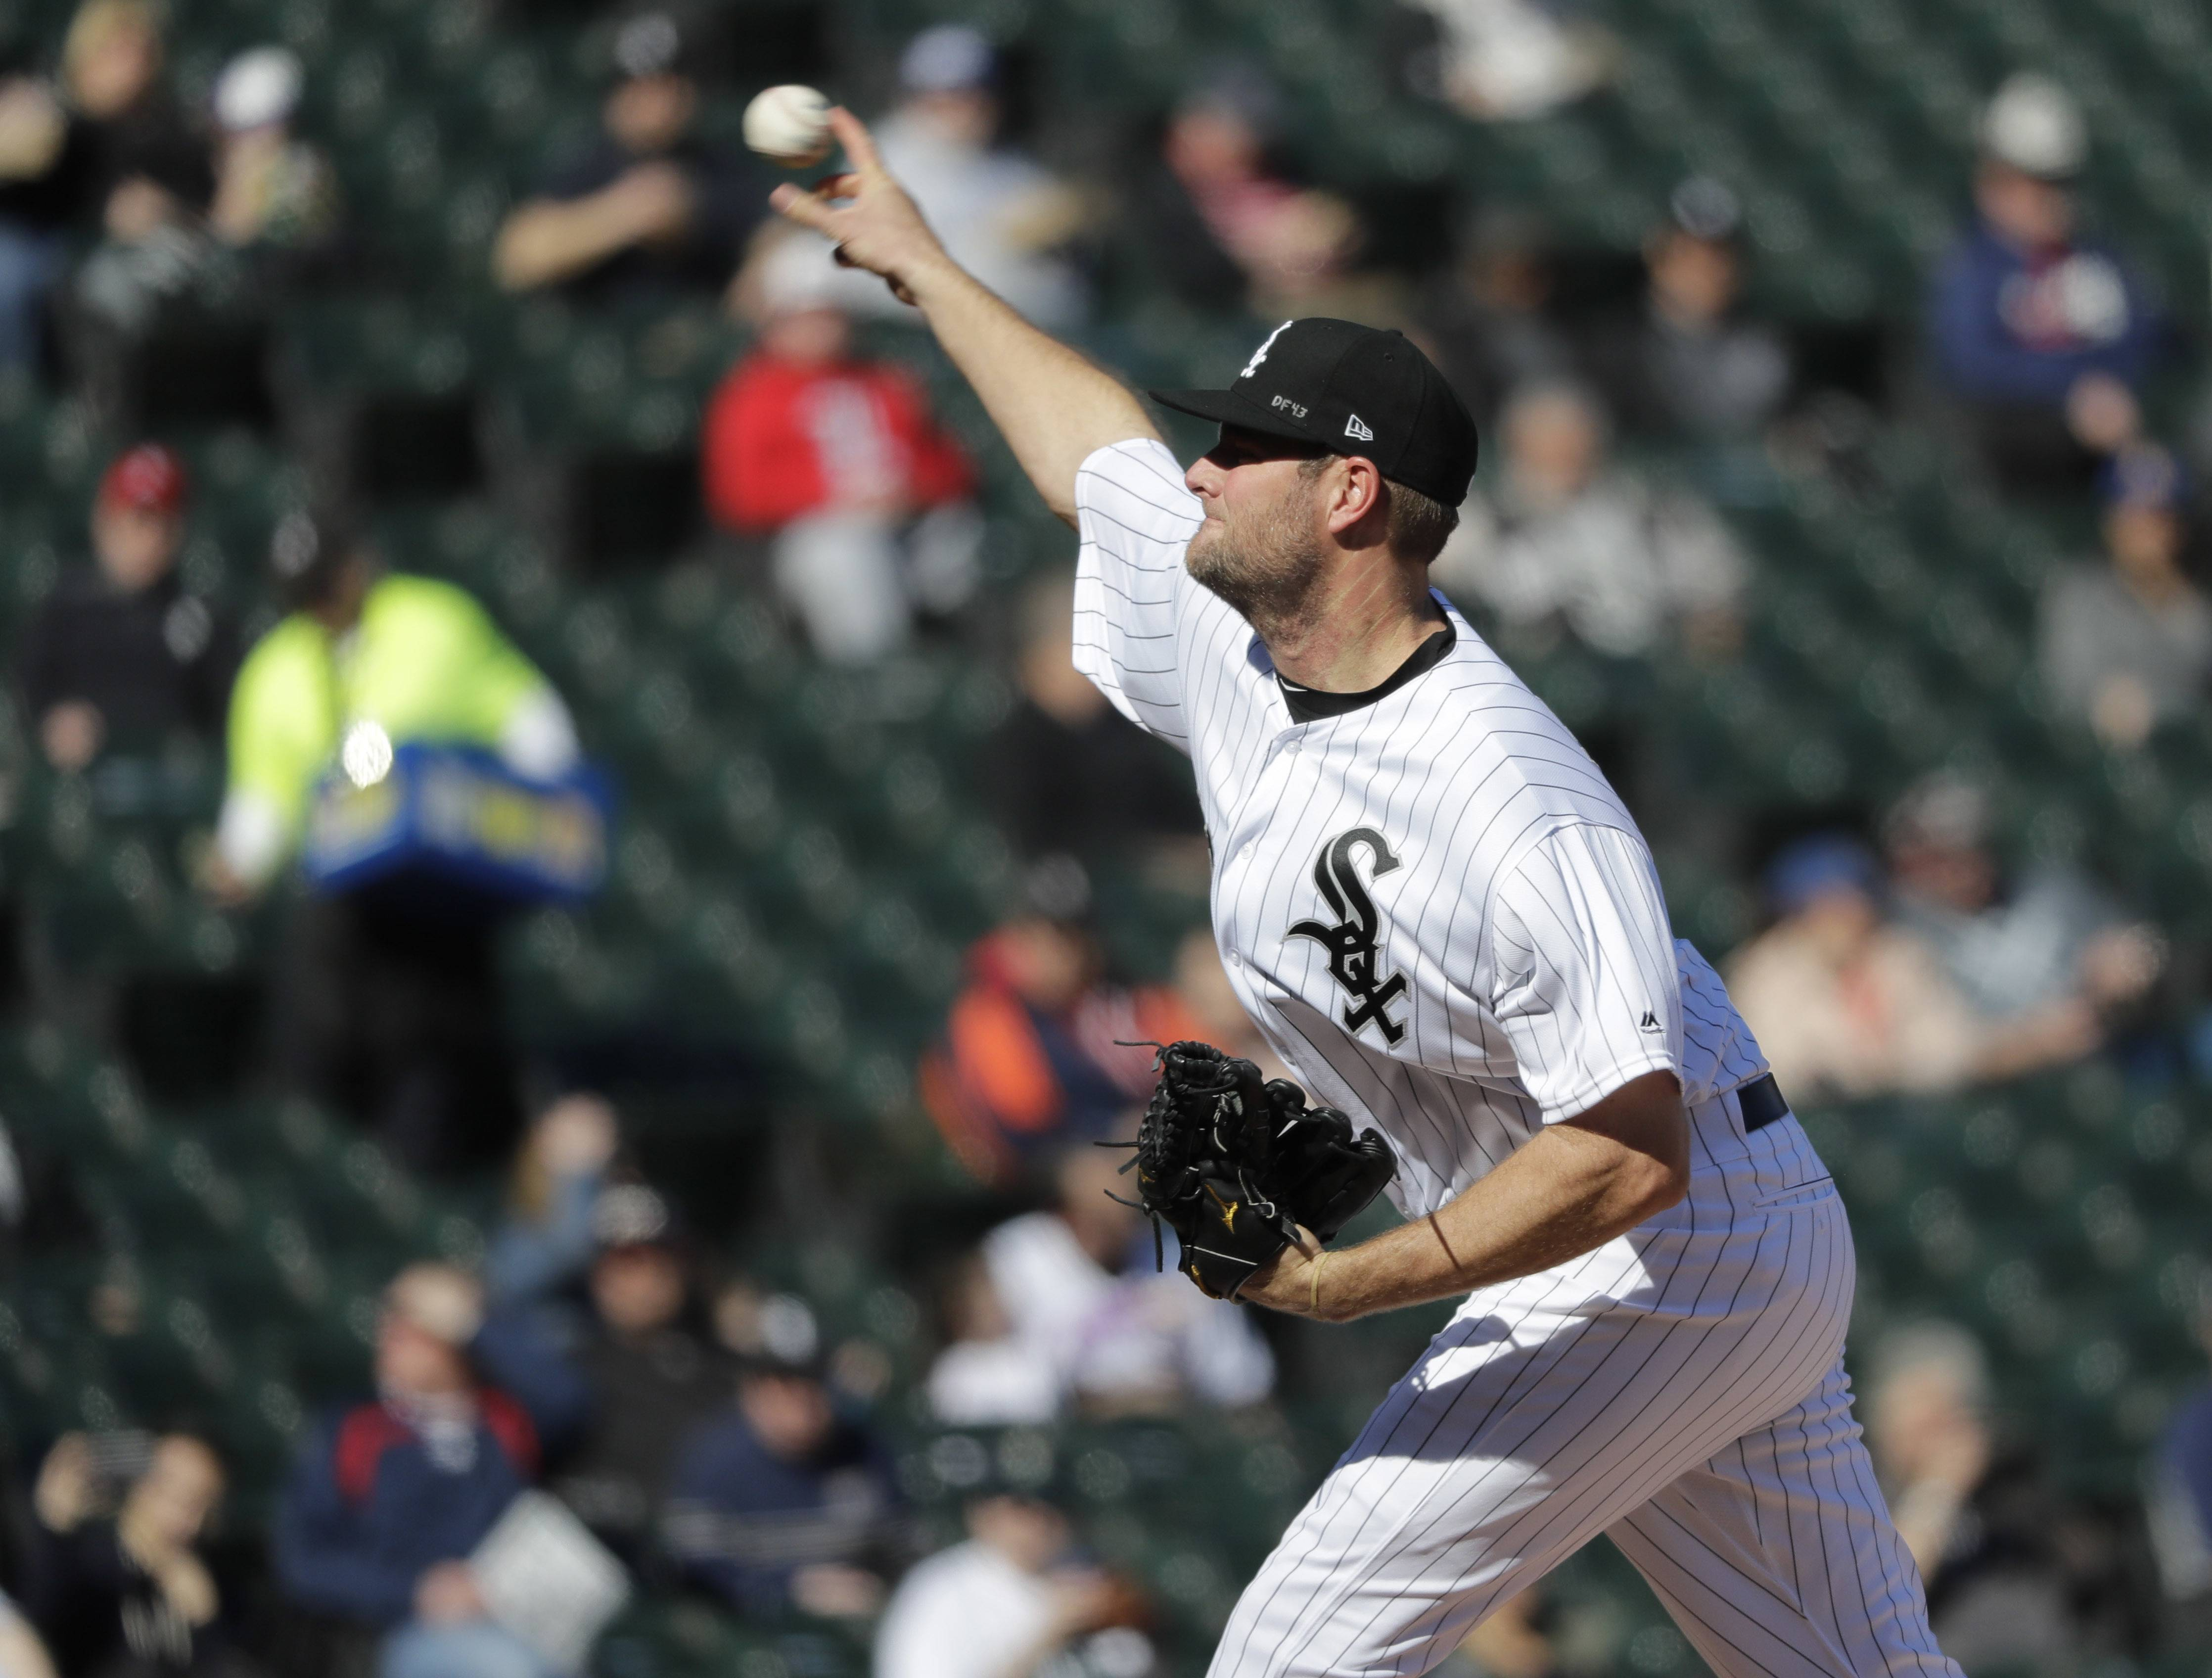 After erupting for 10 runs on 18 hits against the Seattle Mariners Monday, the Chicago White Sox were limited to 5 hits Tuesday in a 1-0 loss at Guaranteed Rate Field. The Sox had a chance to win a second straight game over the Mariners Tuesday at Guaranteed Rate Field thanks to a strong effort from fill-in starter Chris Volstad.